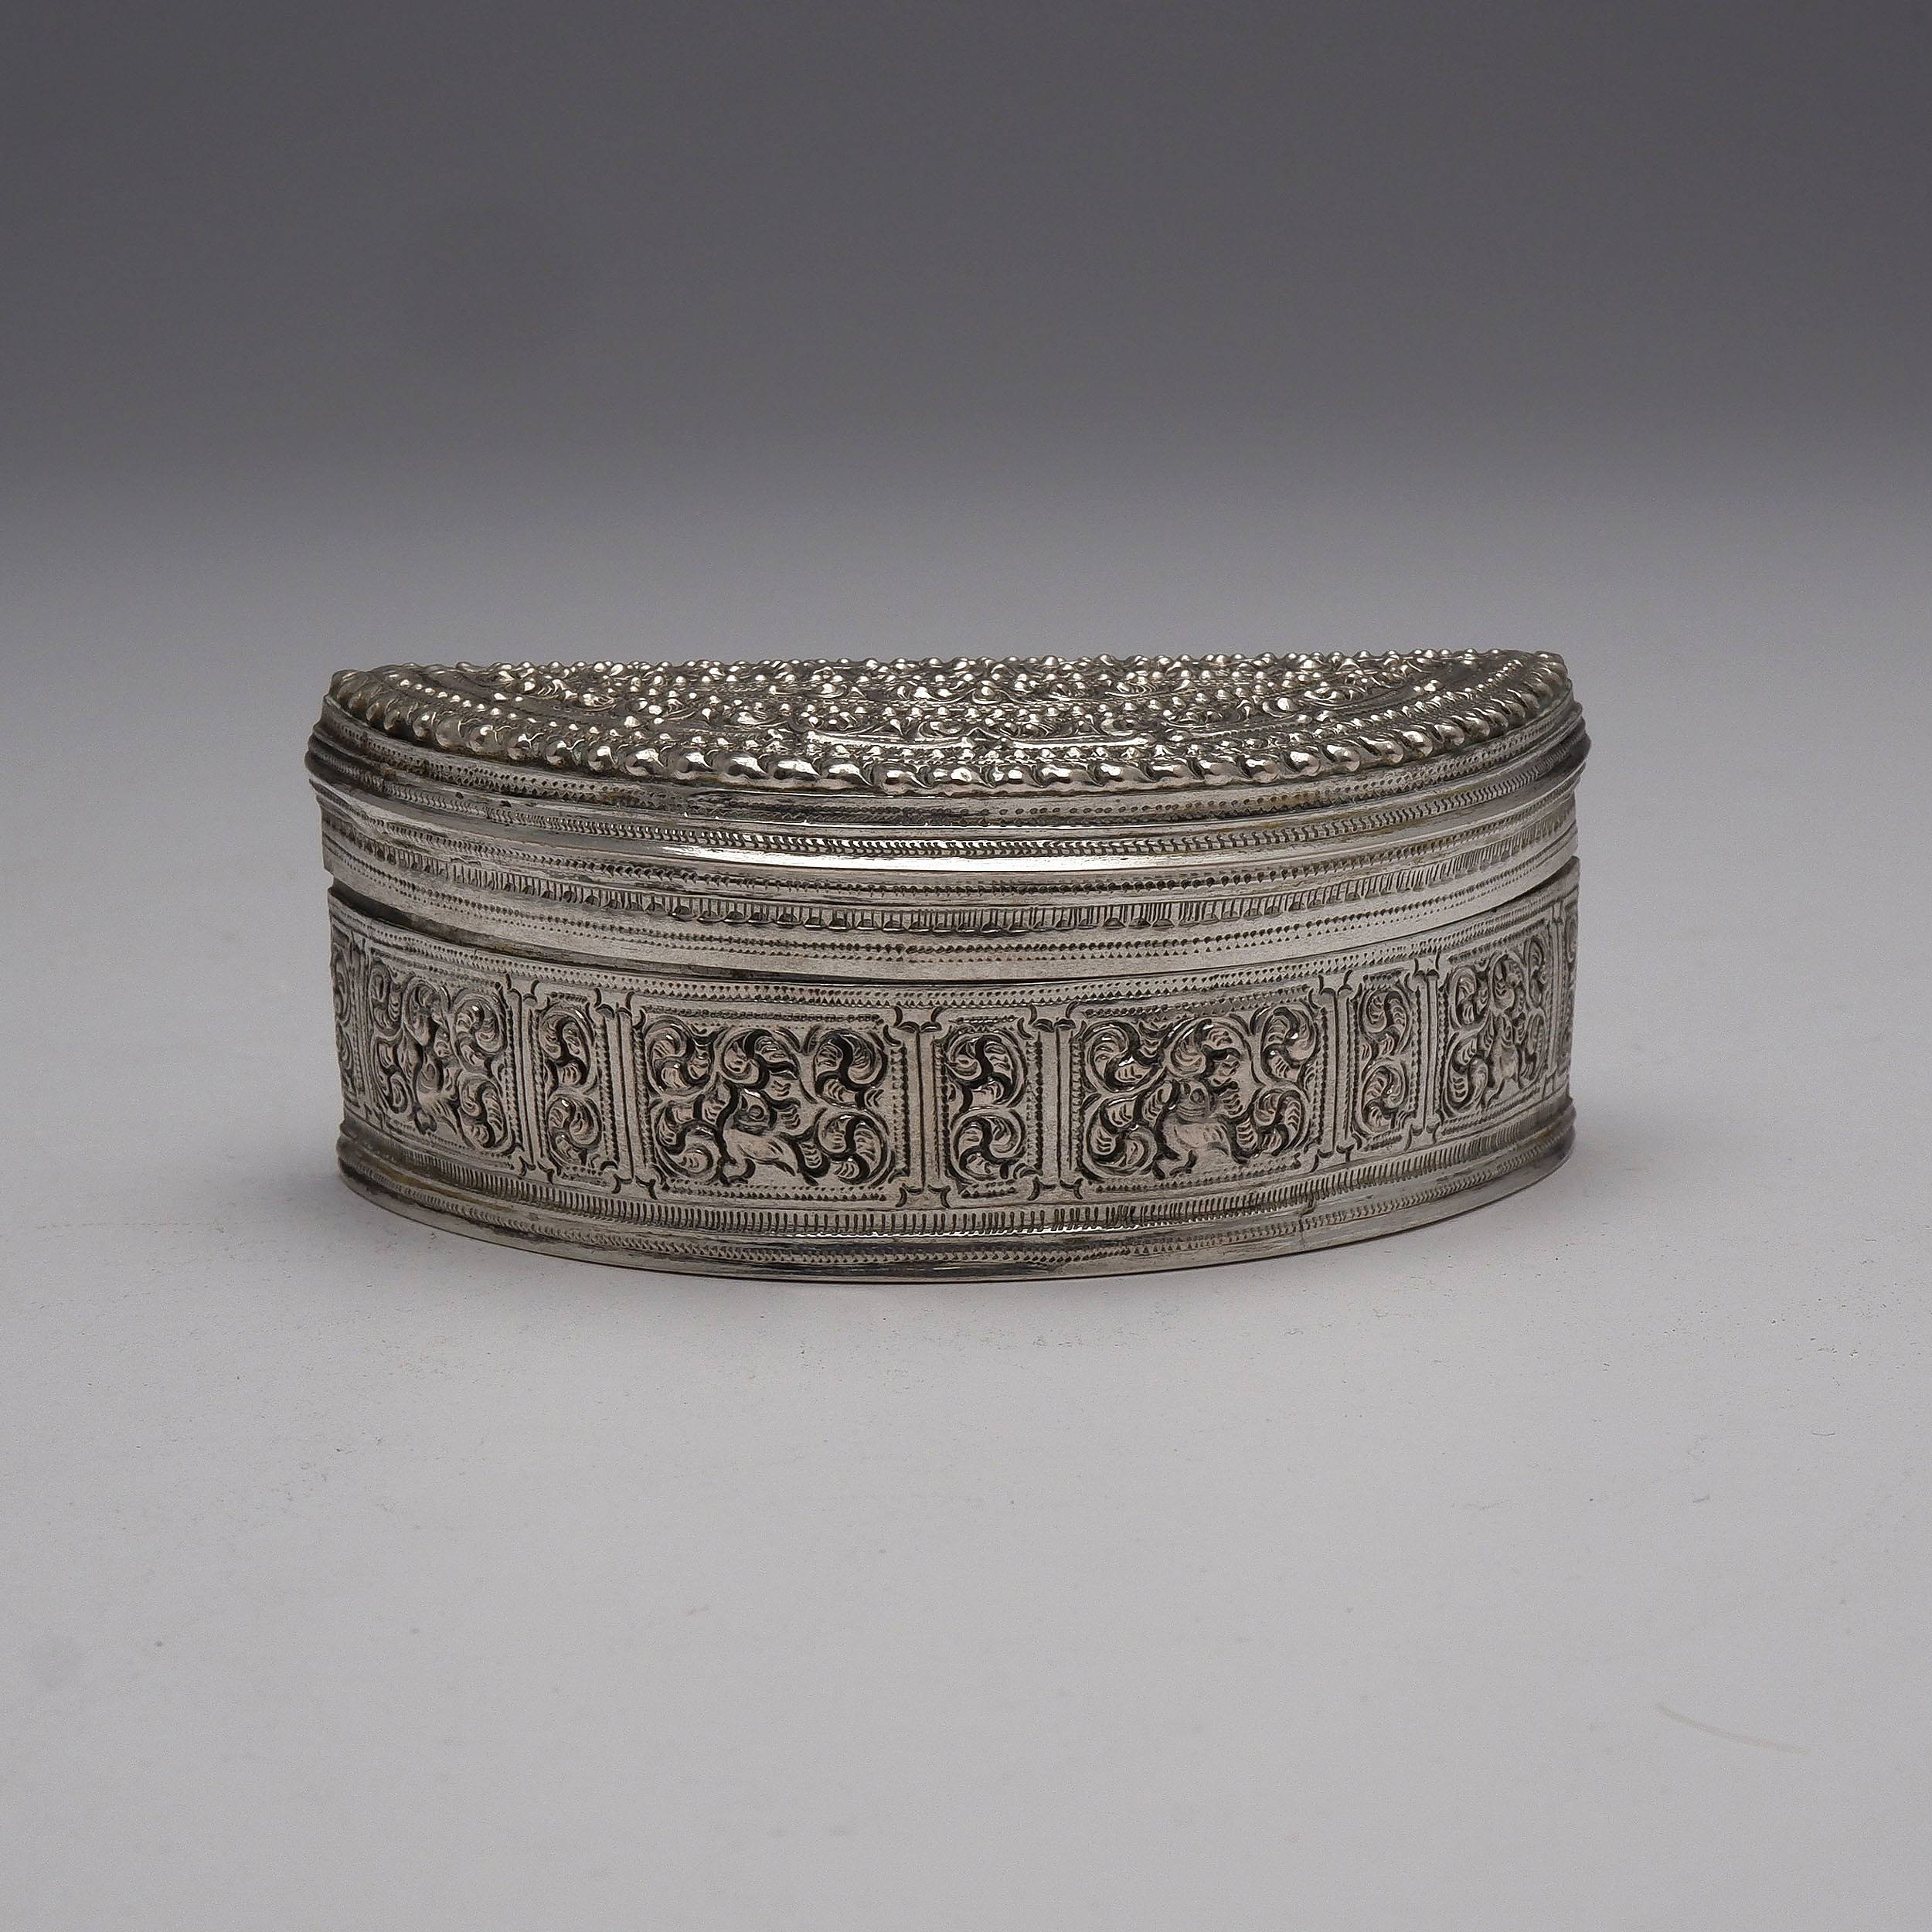 'Burmese Heavily Repousse and Engraved Silver Semicircular Box, 125g'